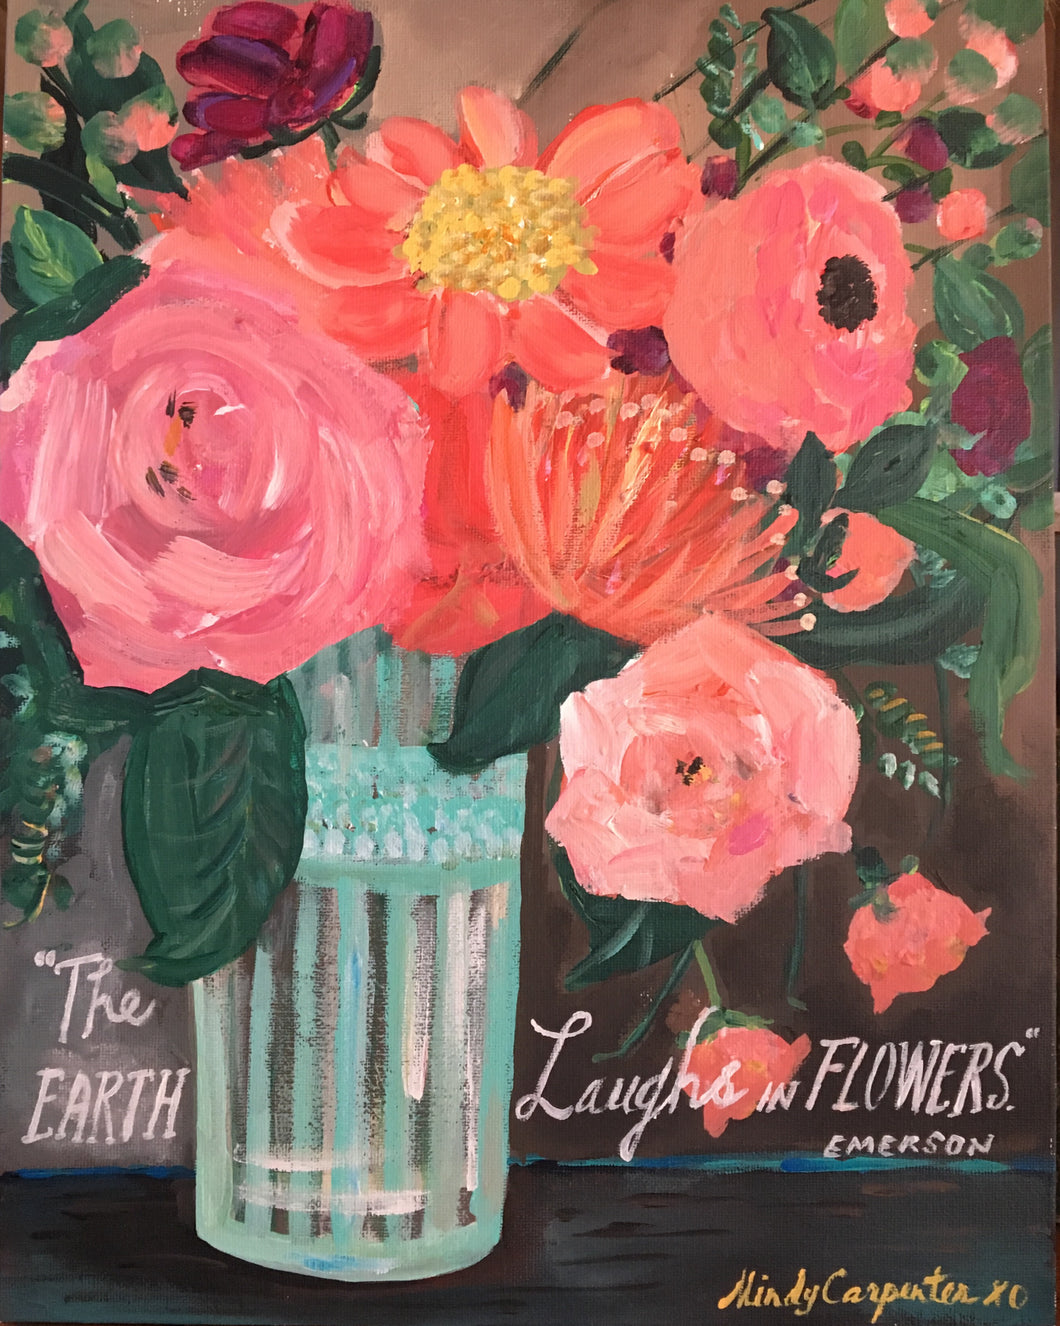 Earth Laughs in Flowers | Greeting Card